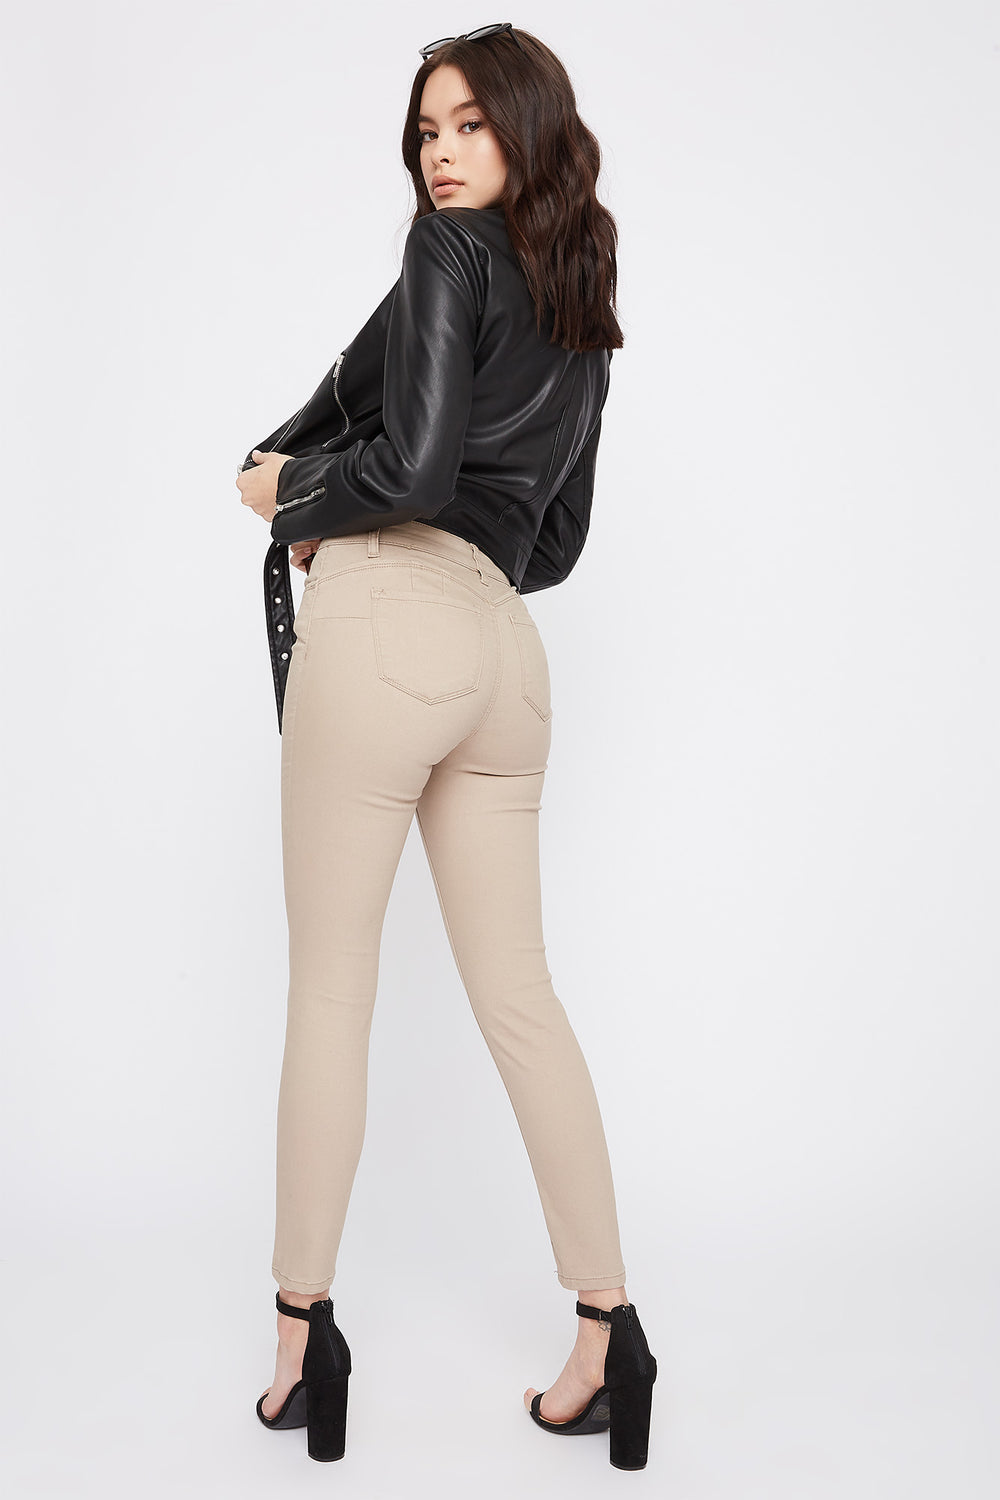 Butt, I Love You Solid High-Rise Push-Up Skinny Jean Khaki